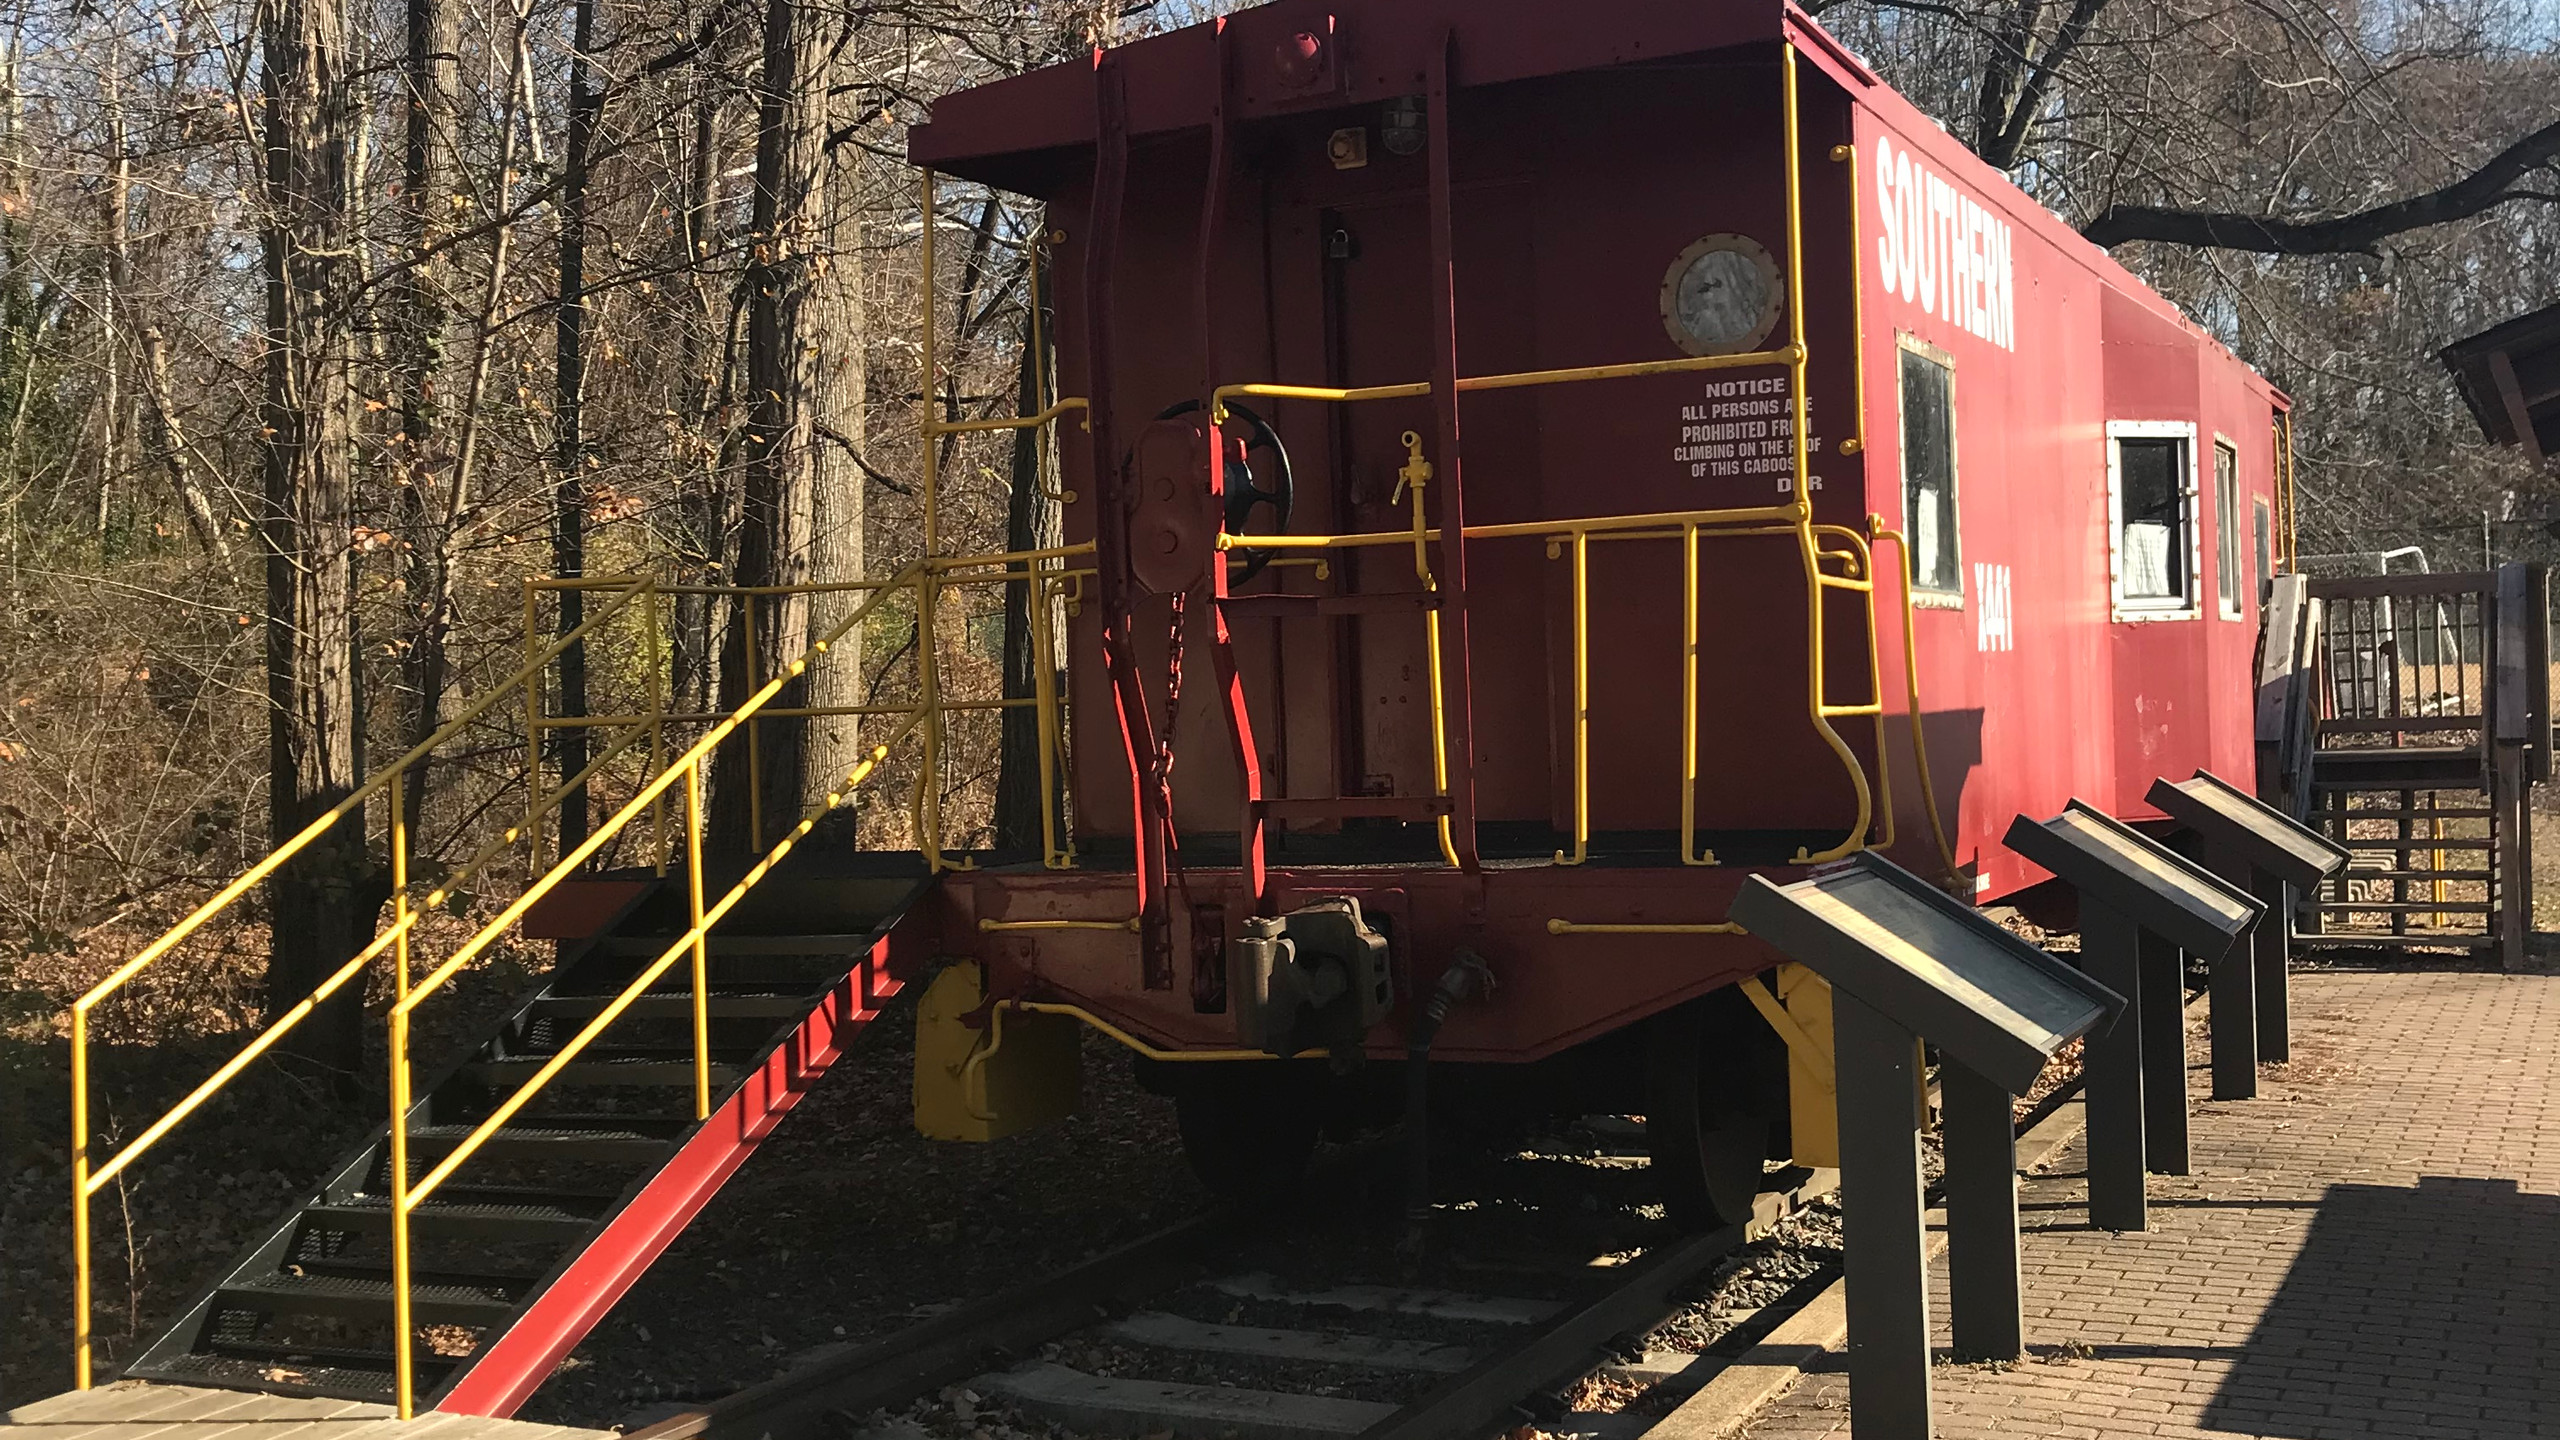 Caboose at Bluemont